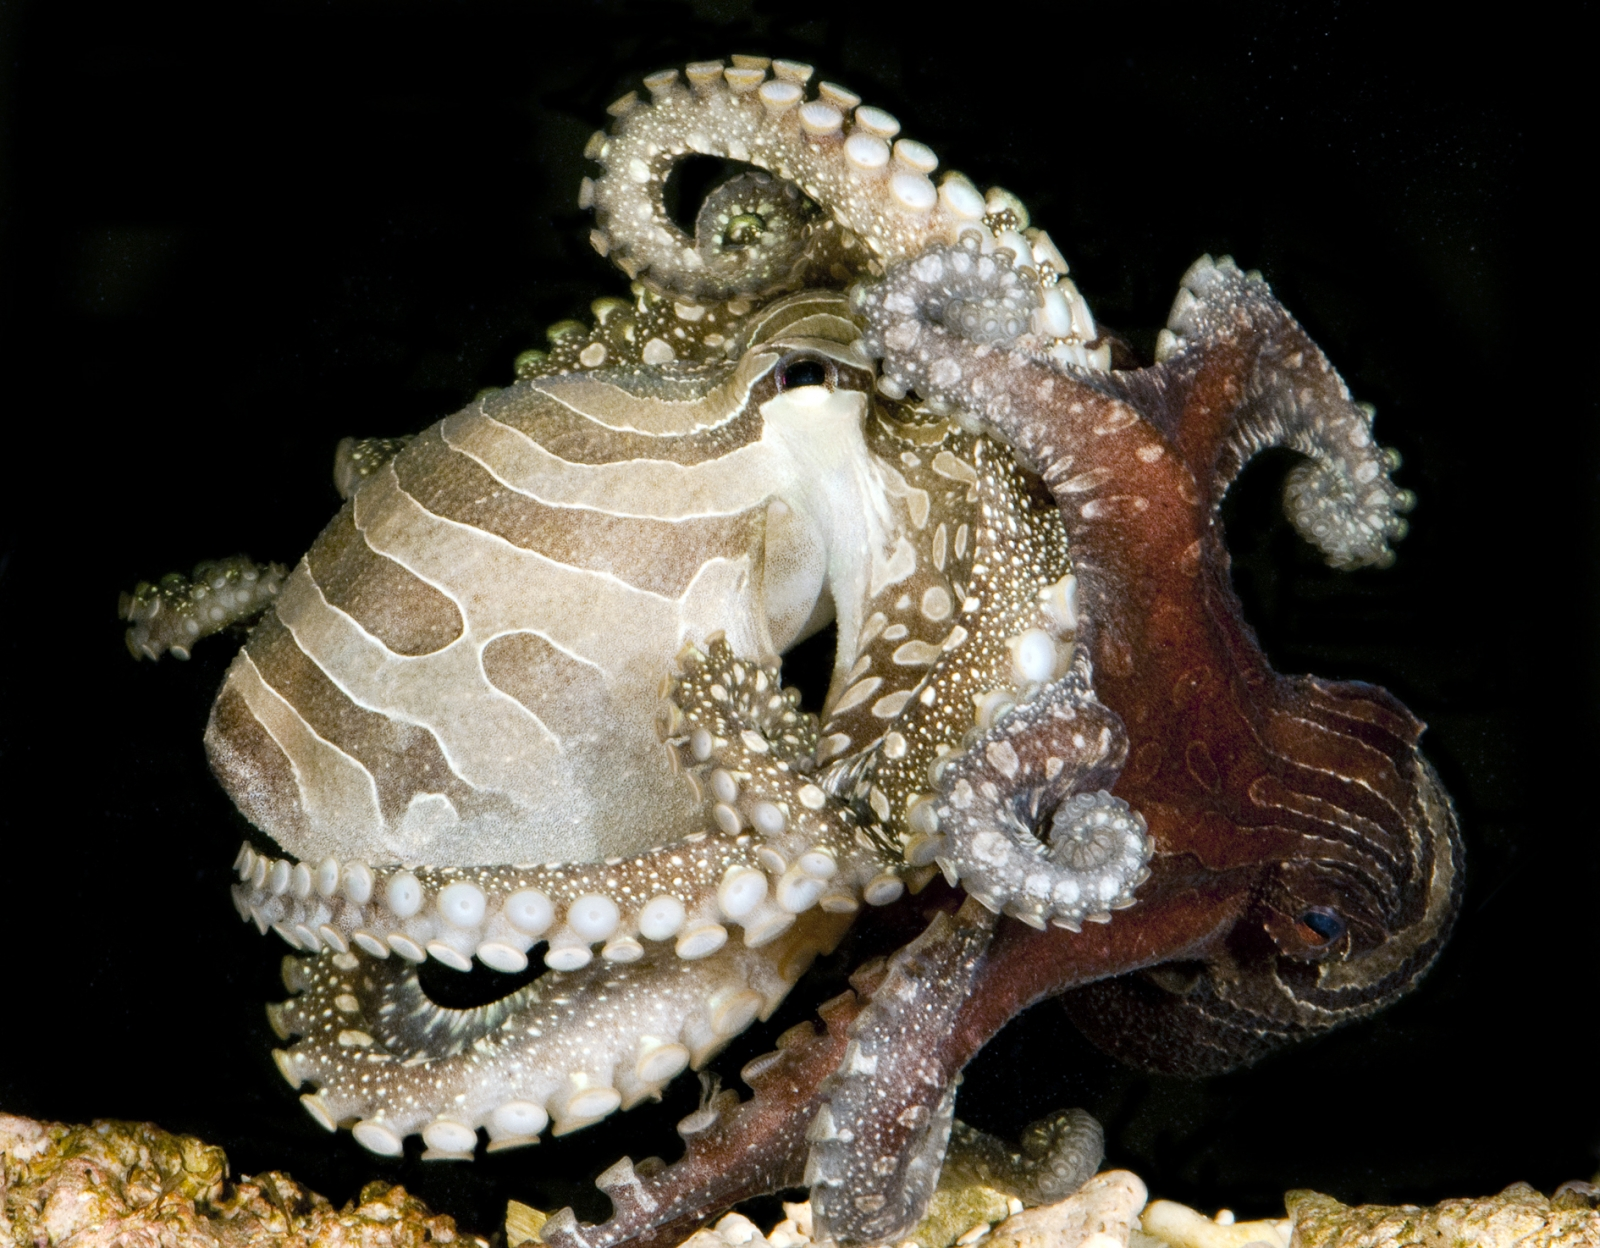 pacific striped octopus mating